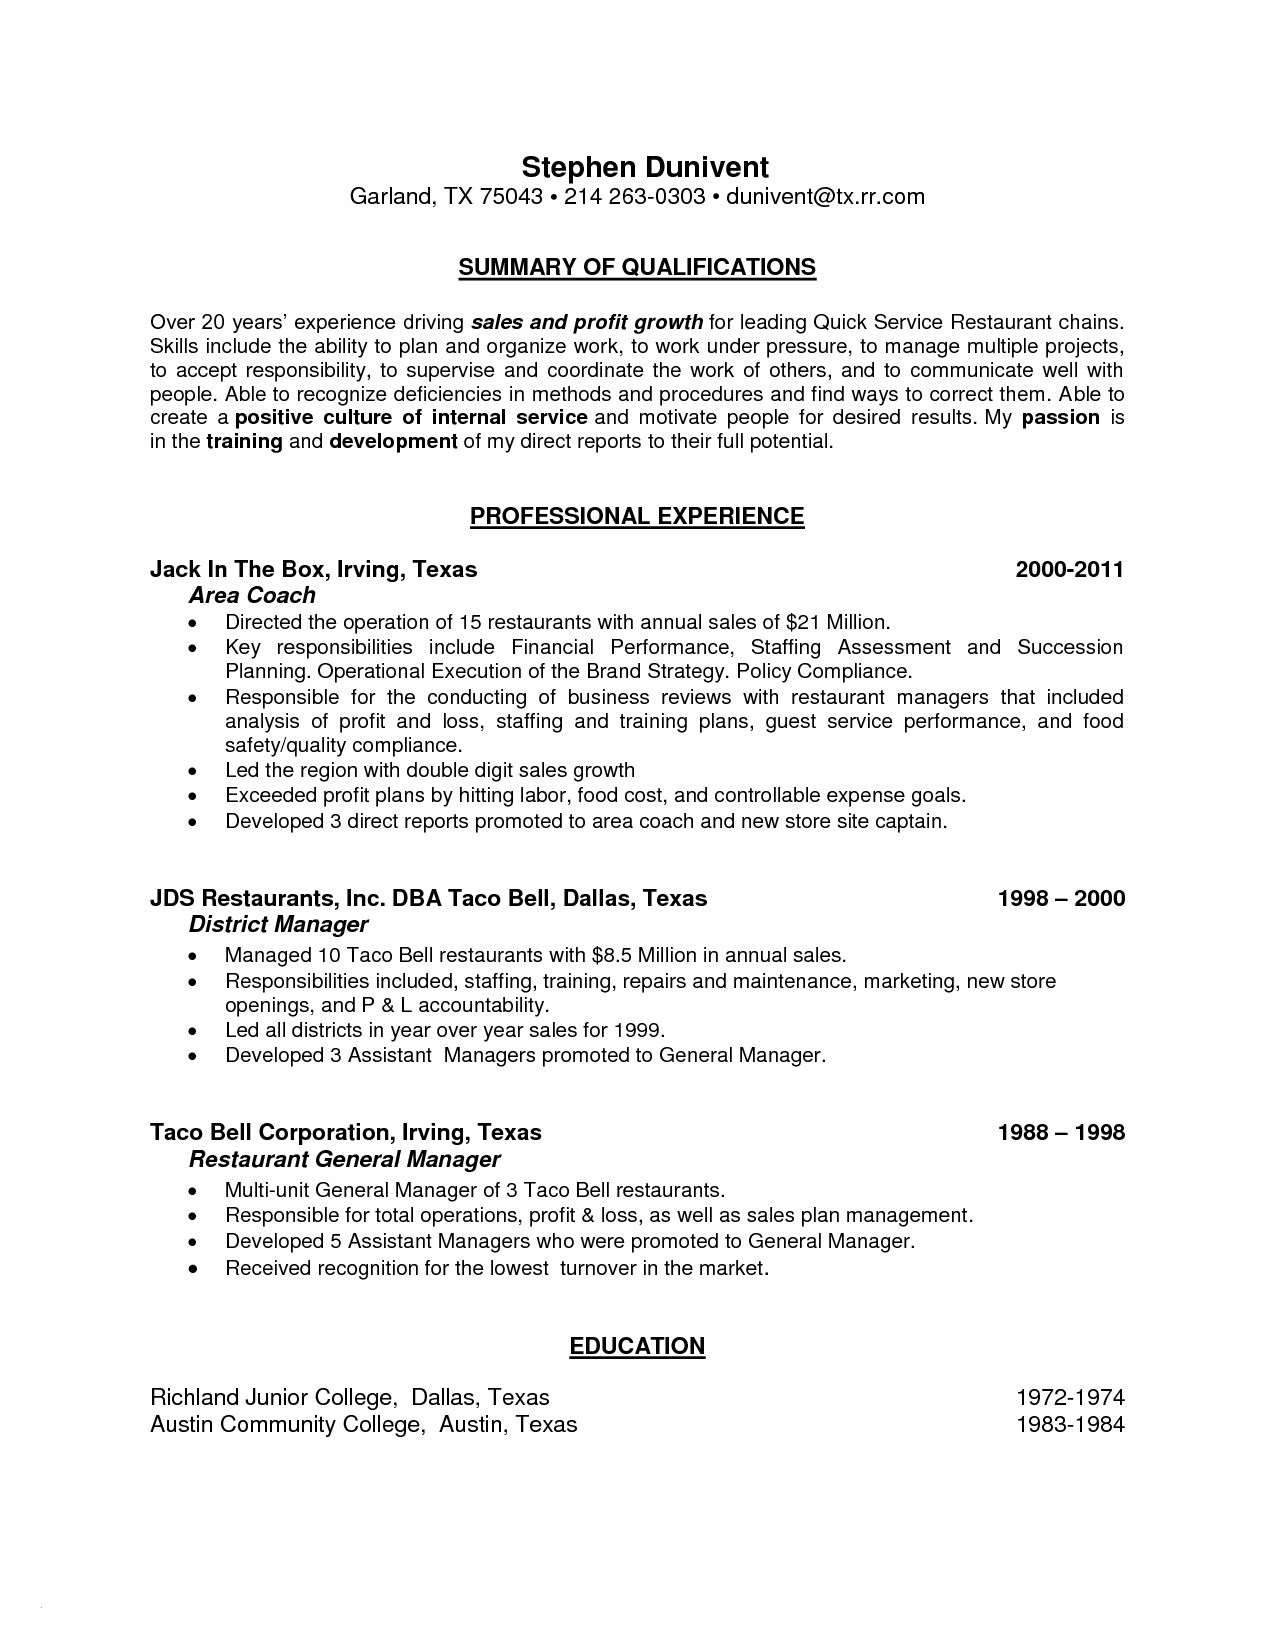 salesperson resume template Collection-Salesman Resume Example Unique Luxury Grapher Resume Sample Beautiful Resume Quotes 0d Sales Resume 16-j